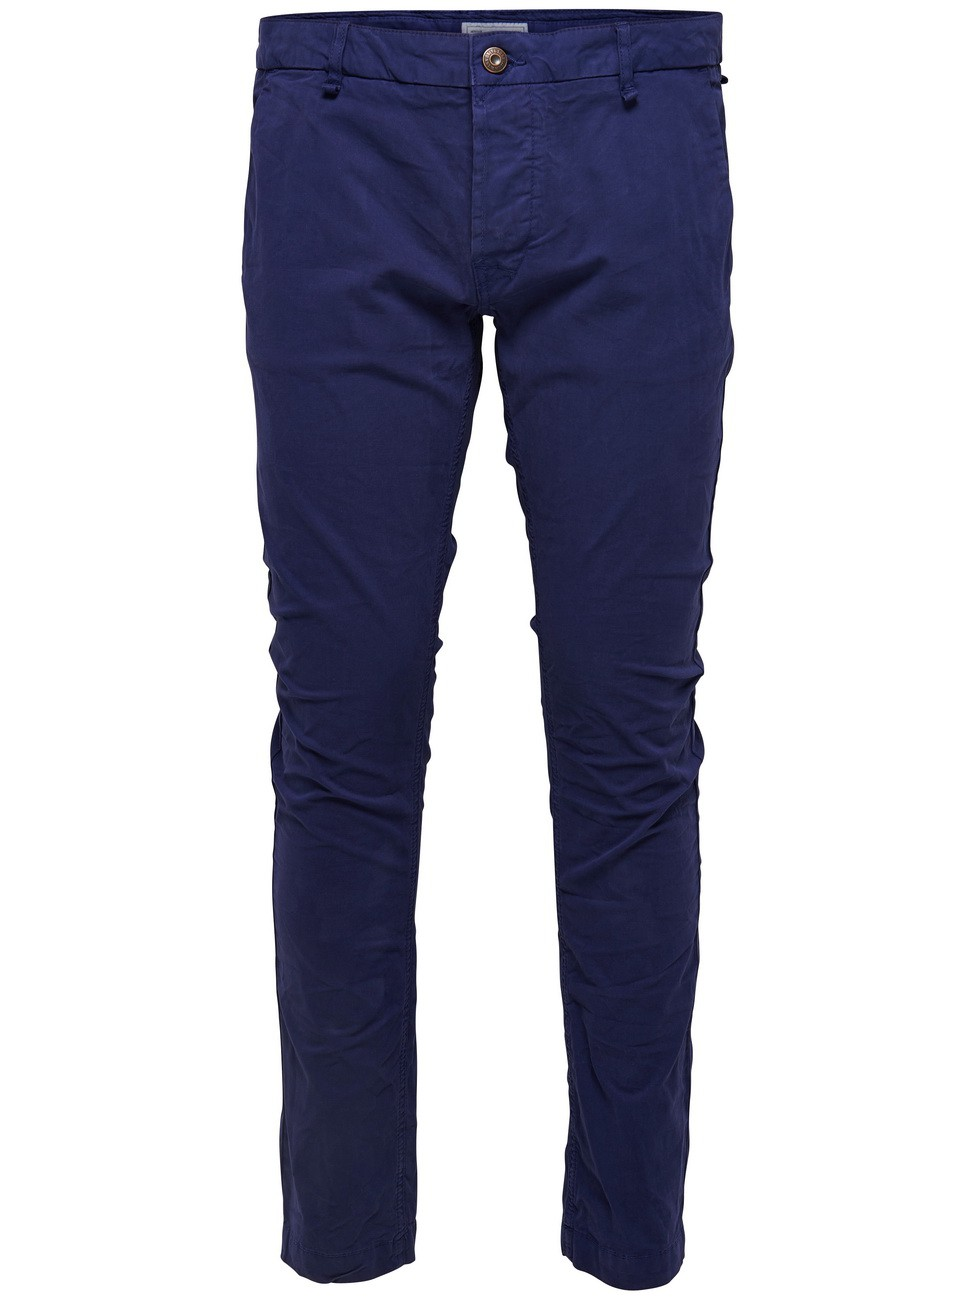 Only & Sons Herren Chino Hose onsSHARP - Regular Slim - Blau - Dark Navy